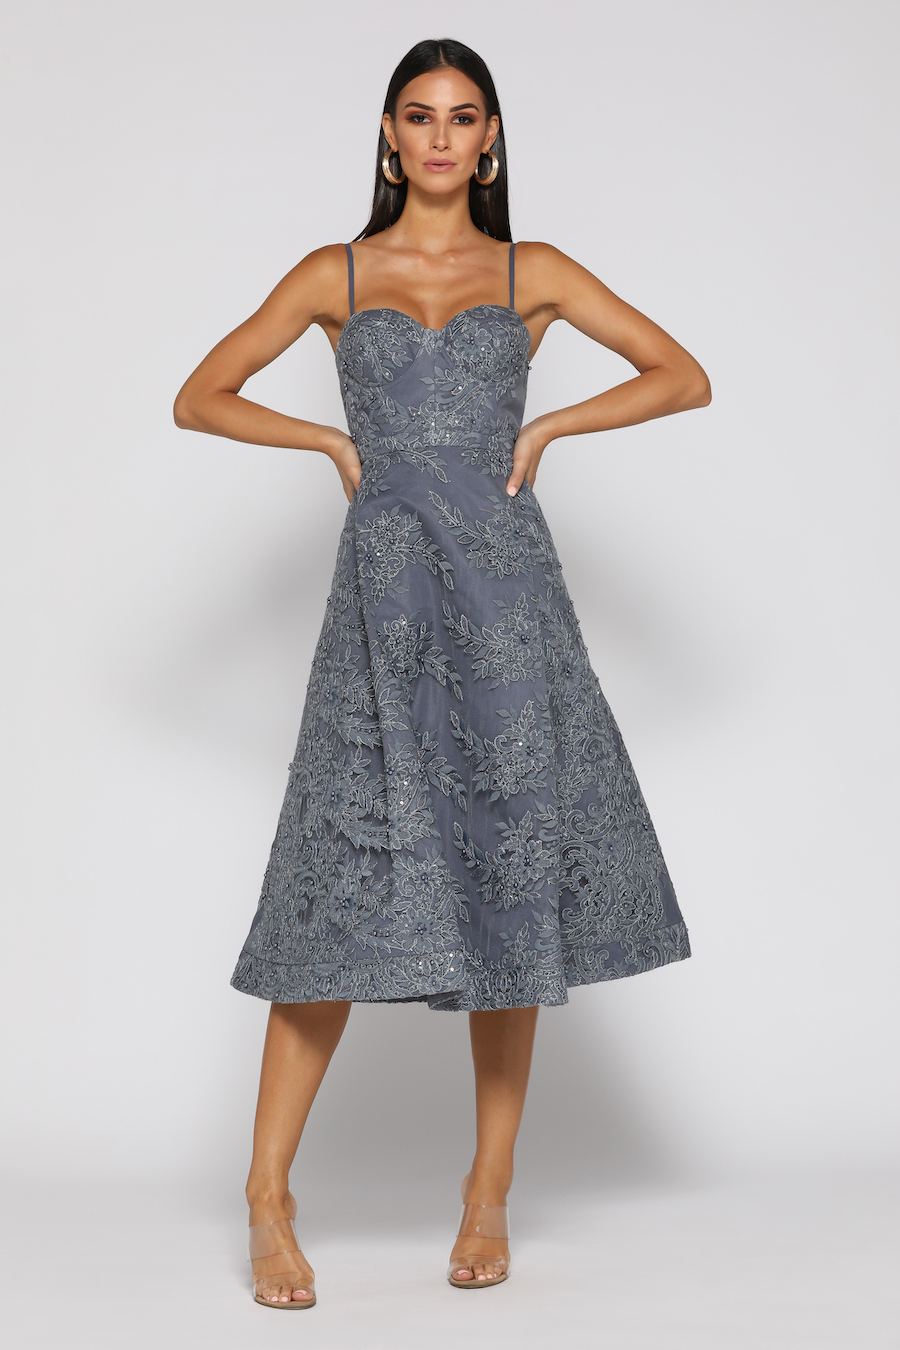 Strapless Pewter with a line skirt and detachable straps